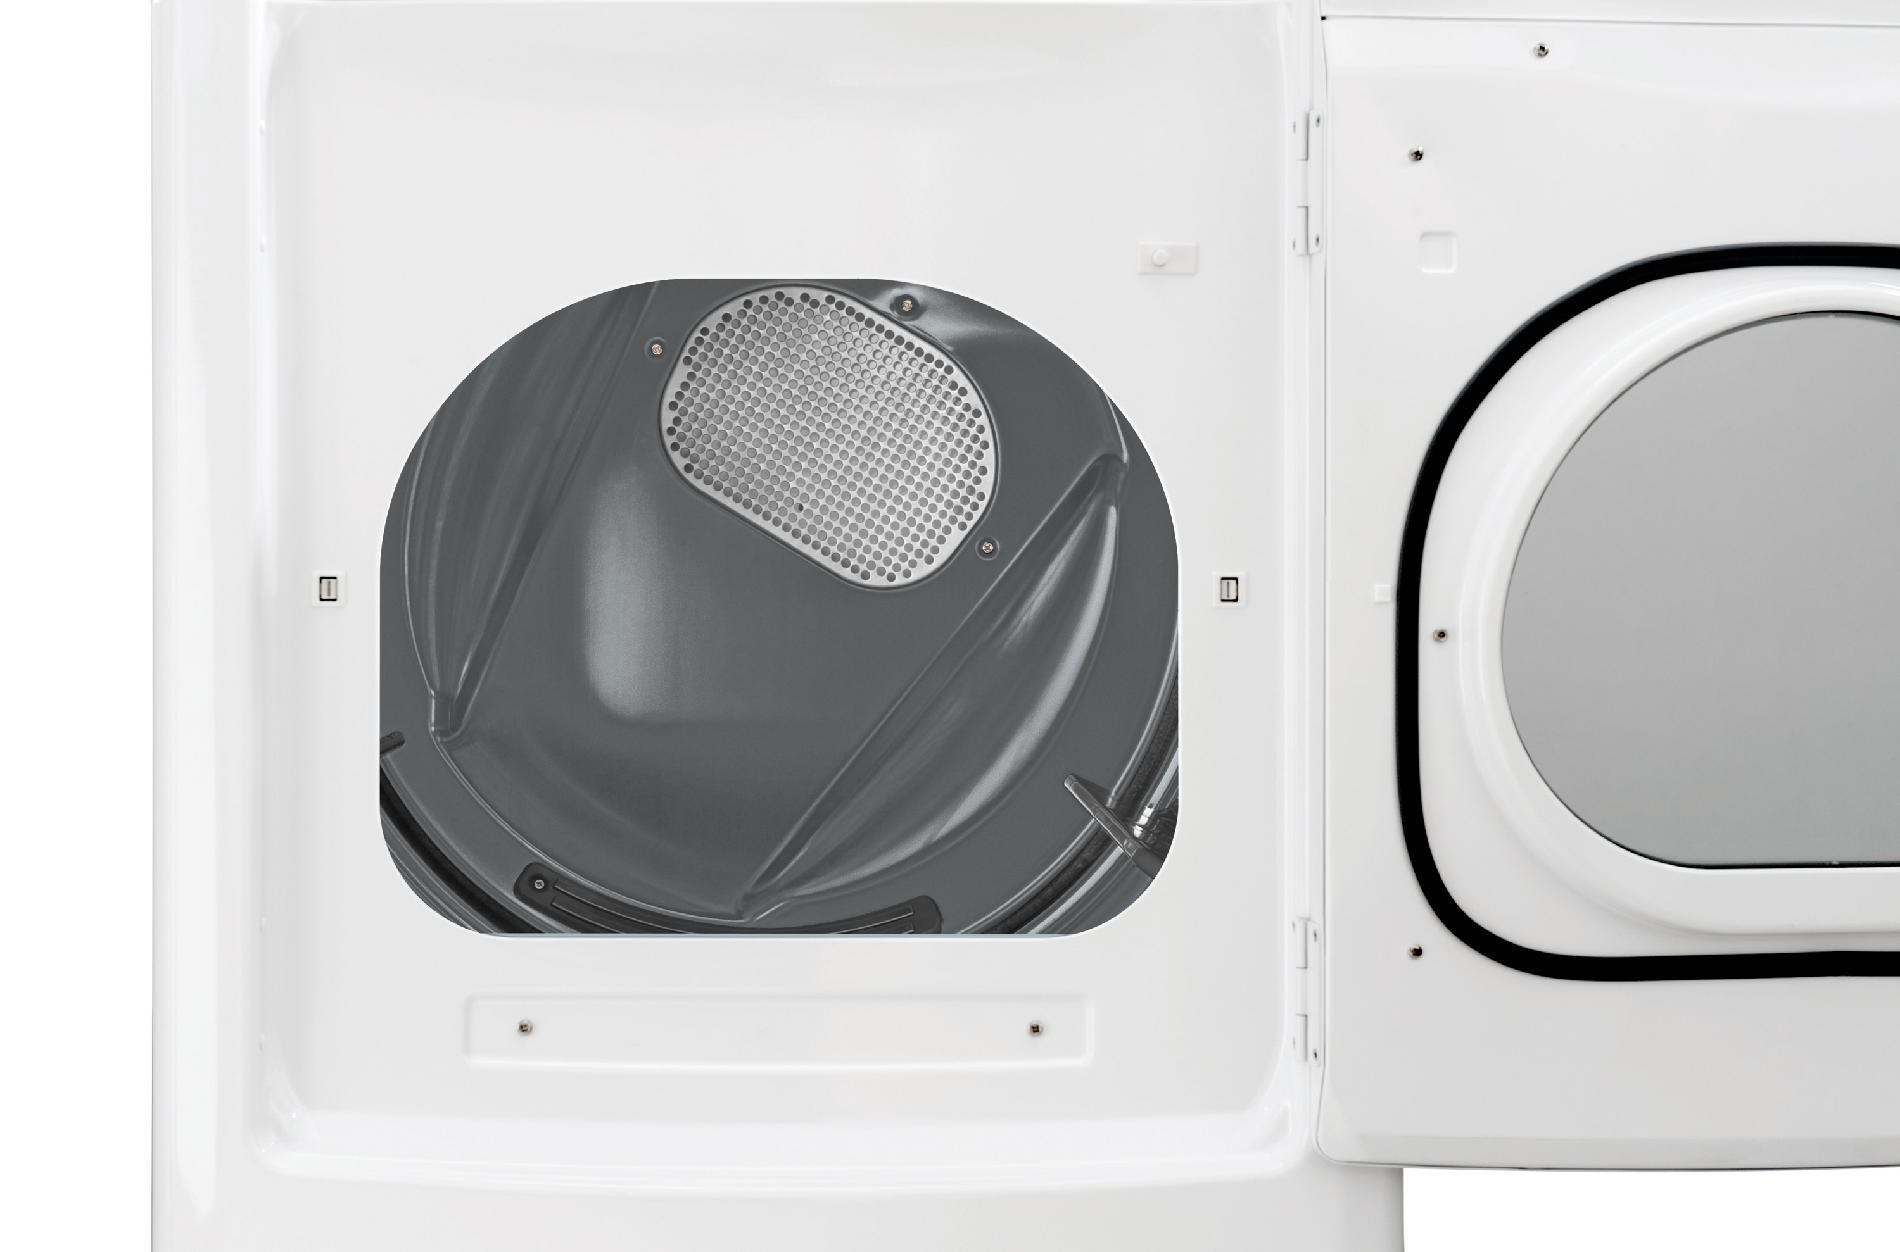 Frigidaire Frigidaire 7.0 cu. ft. Gas Dryer w/ Wrinkle Release - White